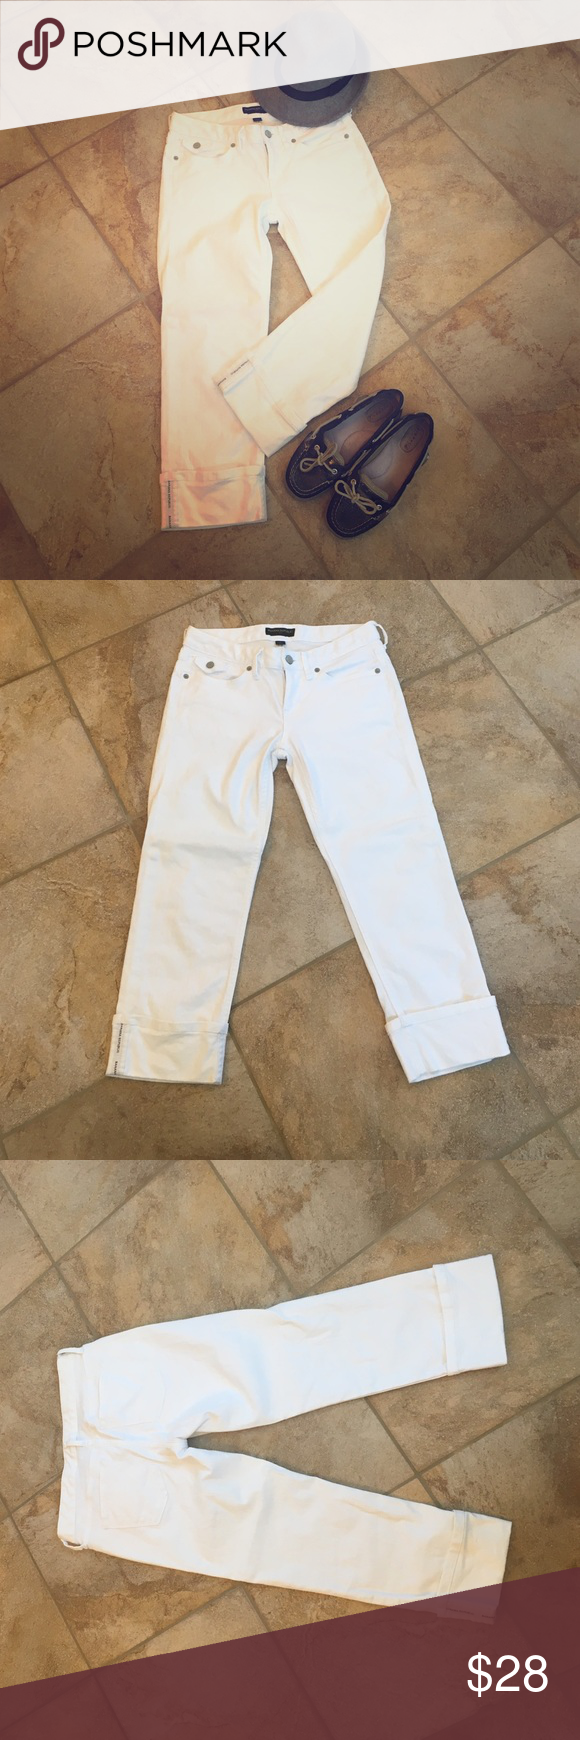 "Banana Republic cropped denim EEUC Banana Republic cropped denim. Only worn once or twice. White demon with a pre stitched 3"" cuff. Hits upper/mid calf. Very flattering fit, slimming. Size 26/2. Absolutely no visible wear or staining. Hand washed. Never dried. Waist is 14"". Inseam is 21"". Banana Republic Jeans Ankle & Cropped"